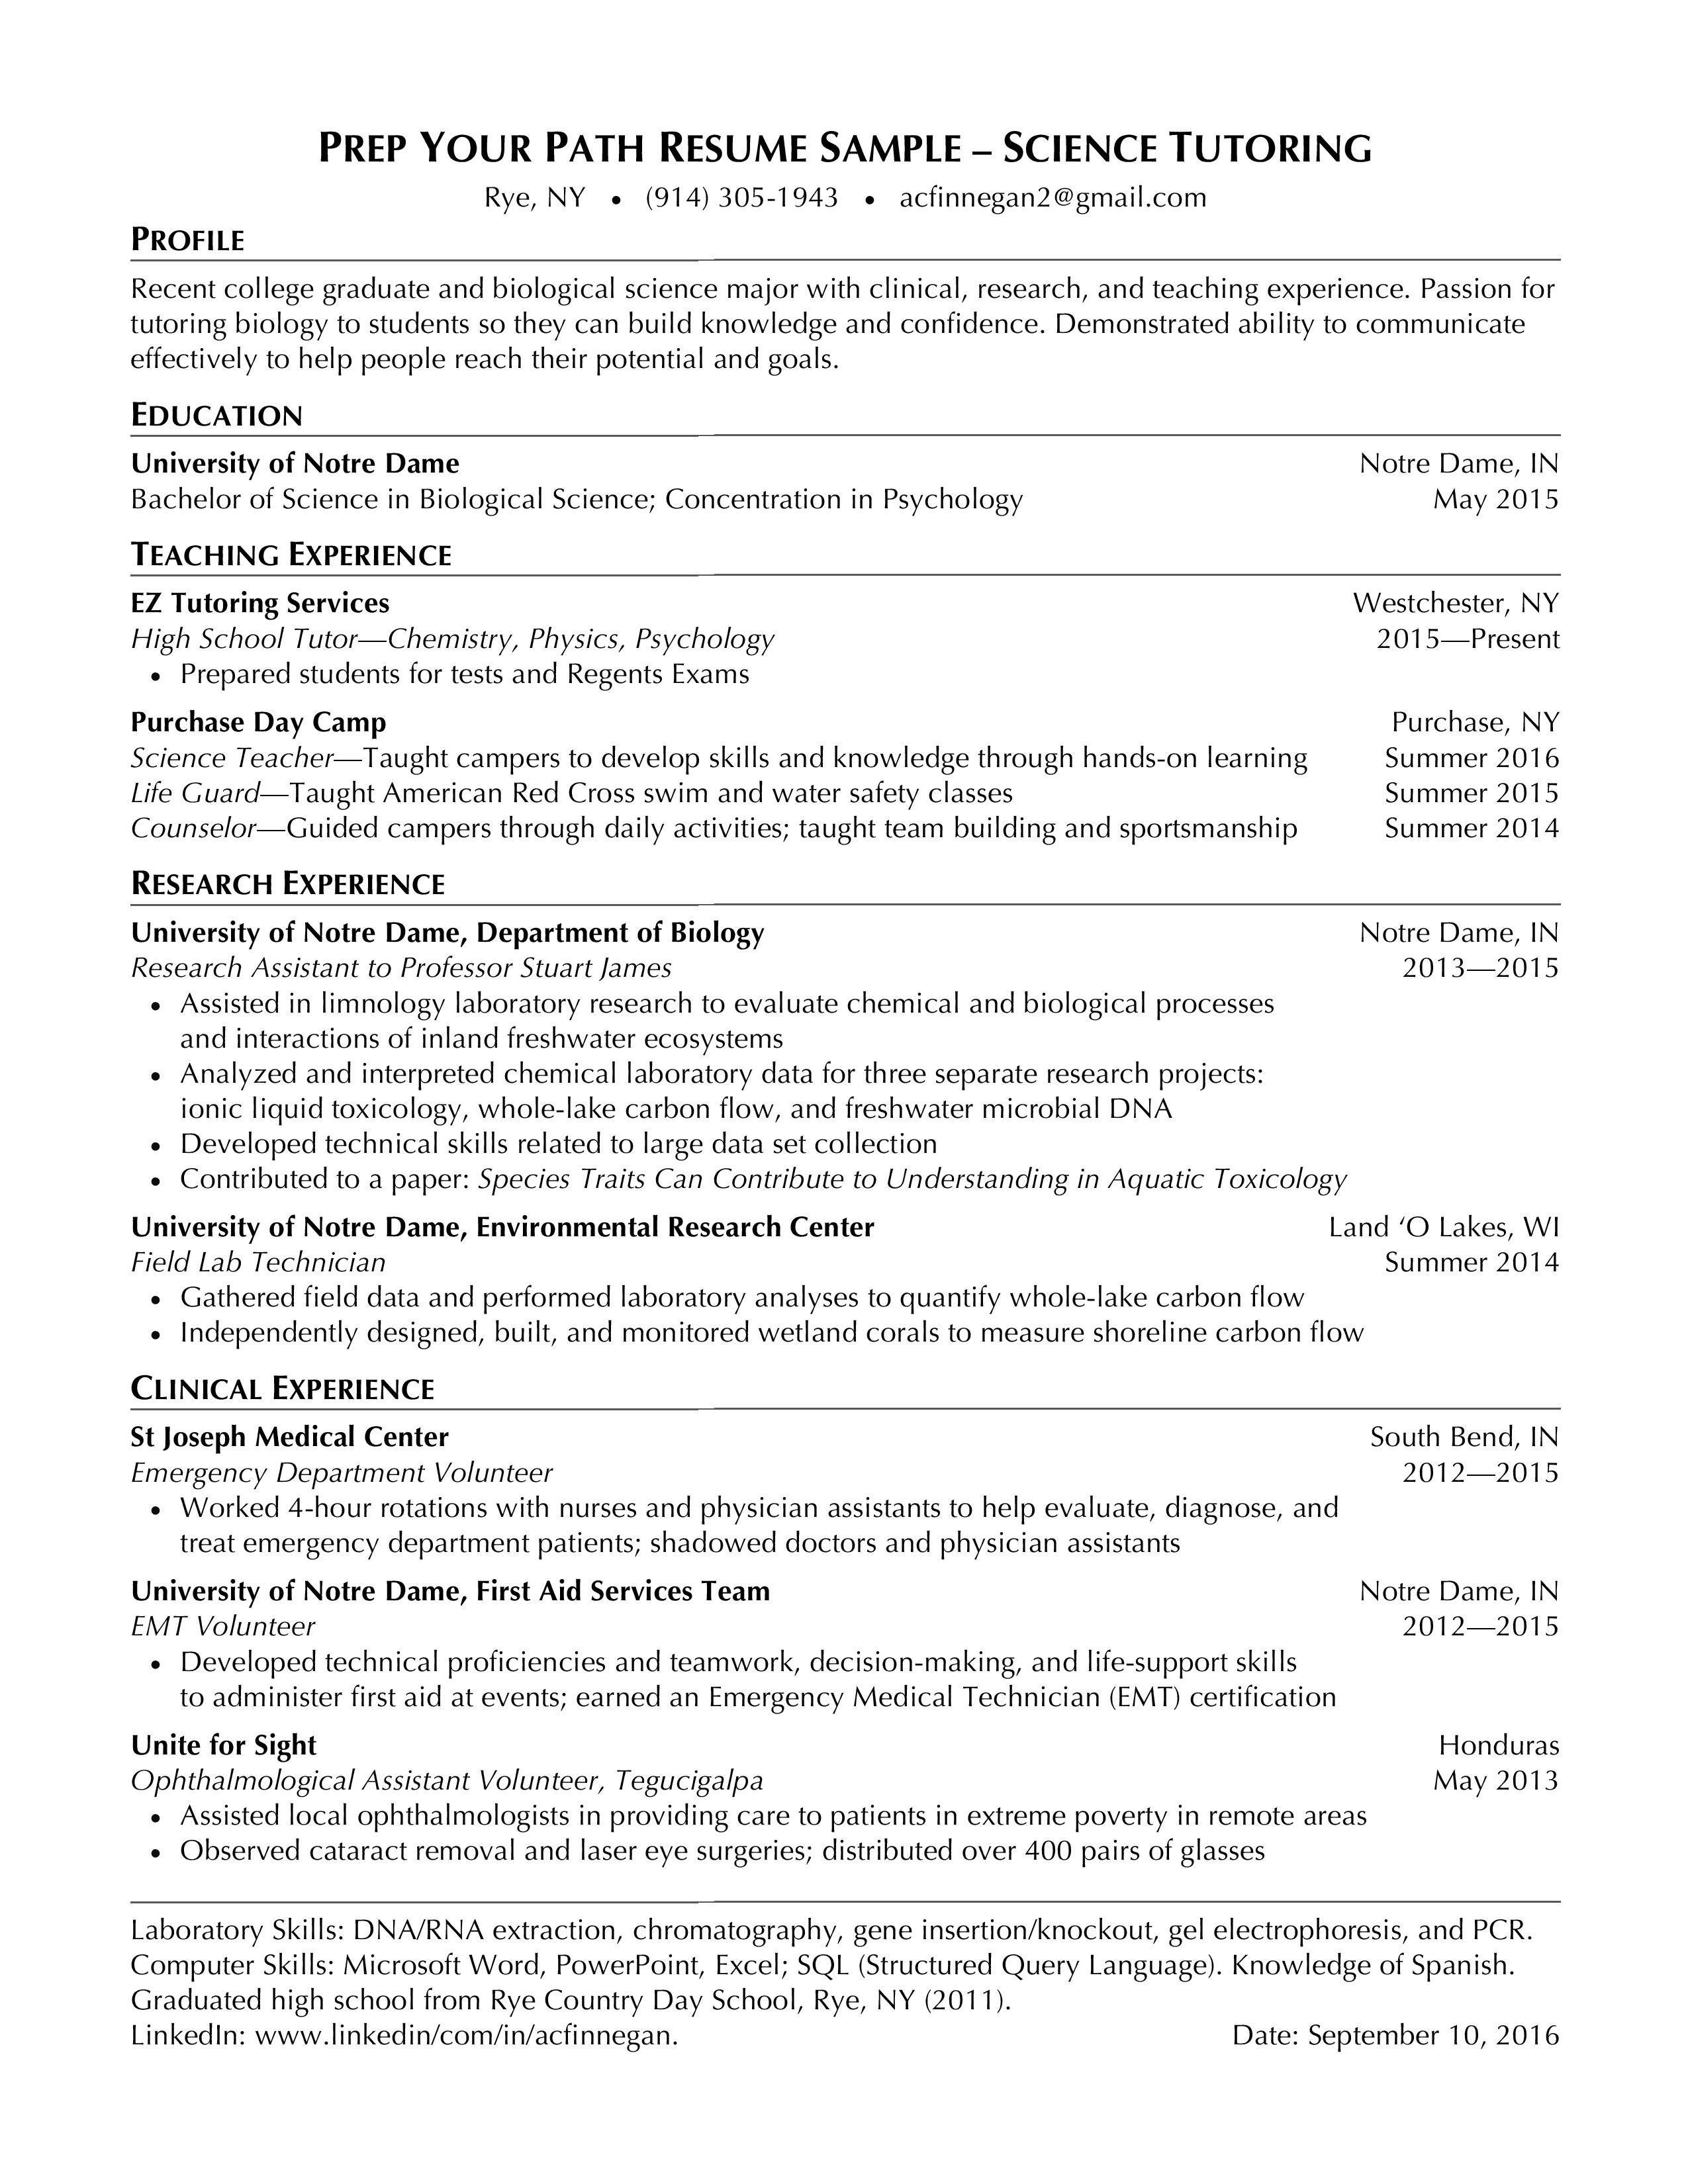 Targeted #2 Resume